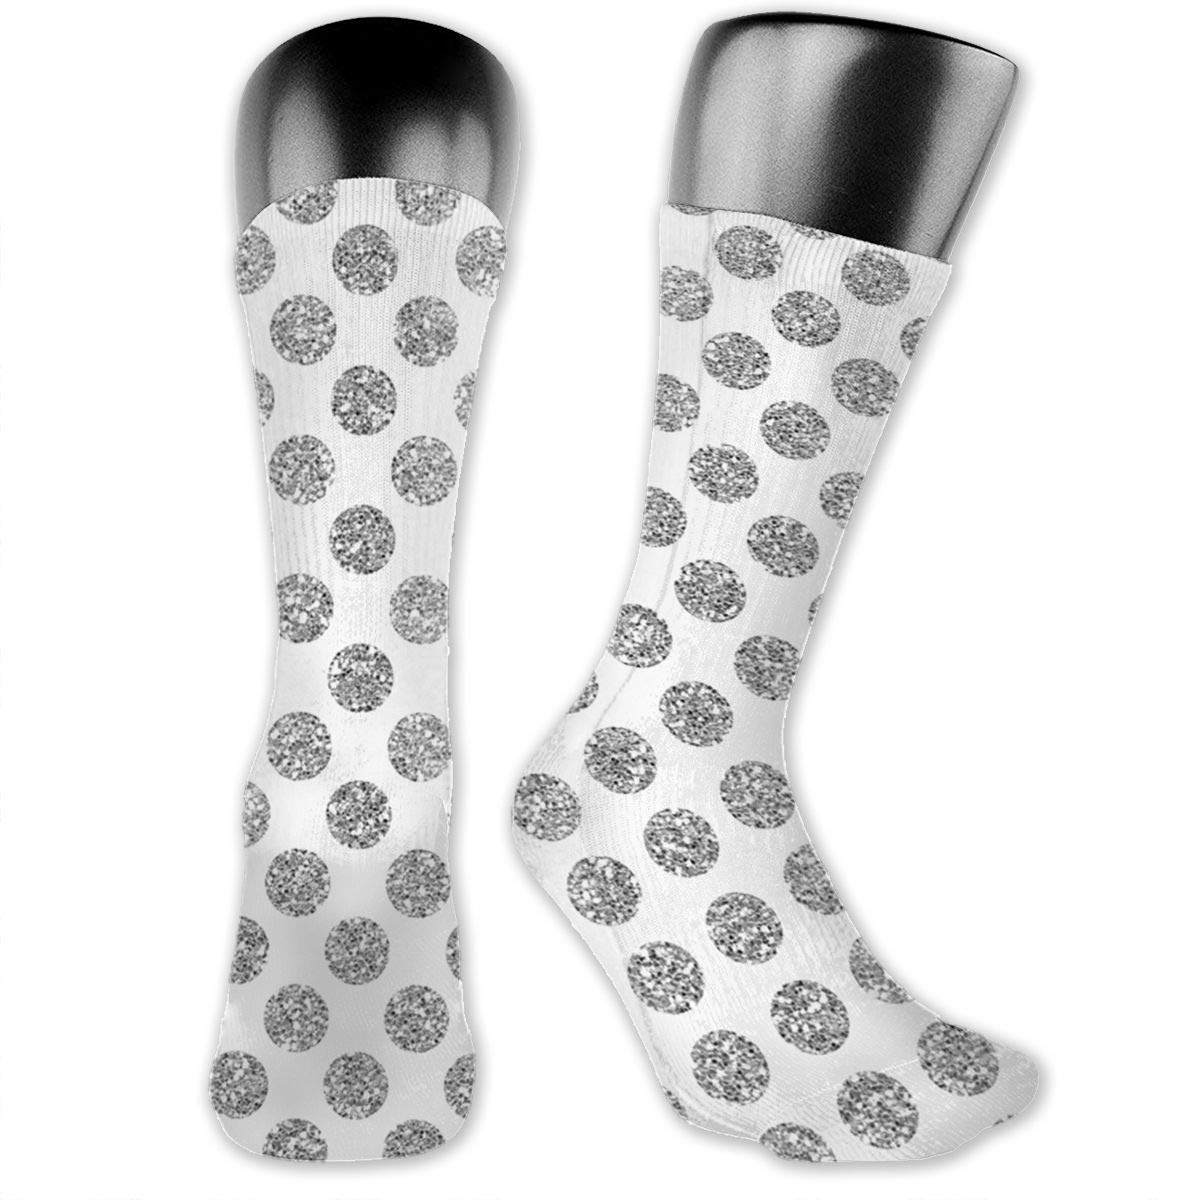 Glitter-polkadot Cotton Casual Colorful Fun Below Knee High Athletic Socks